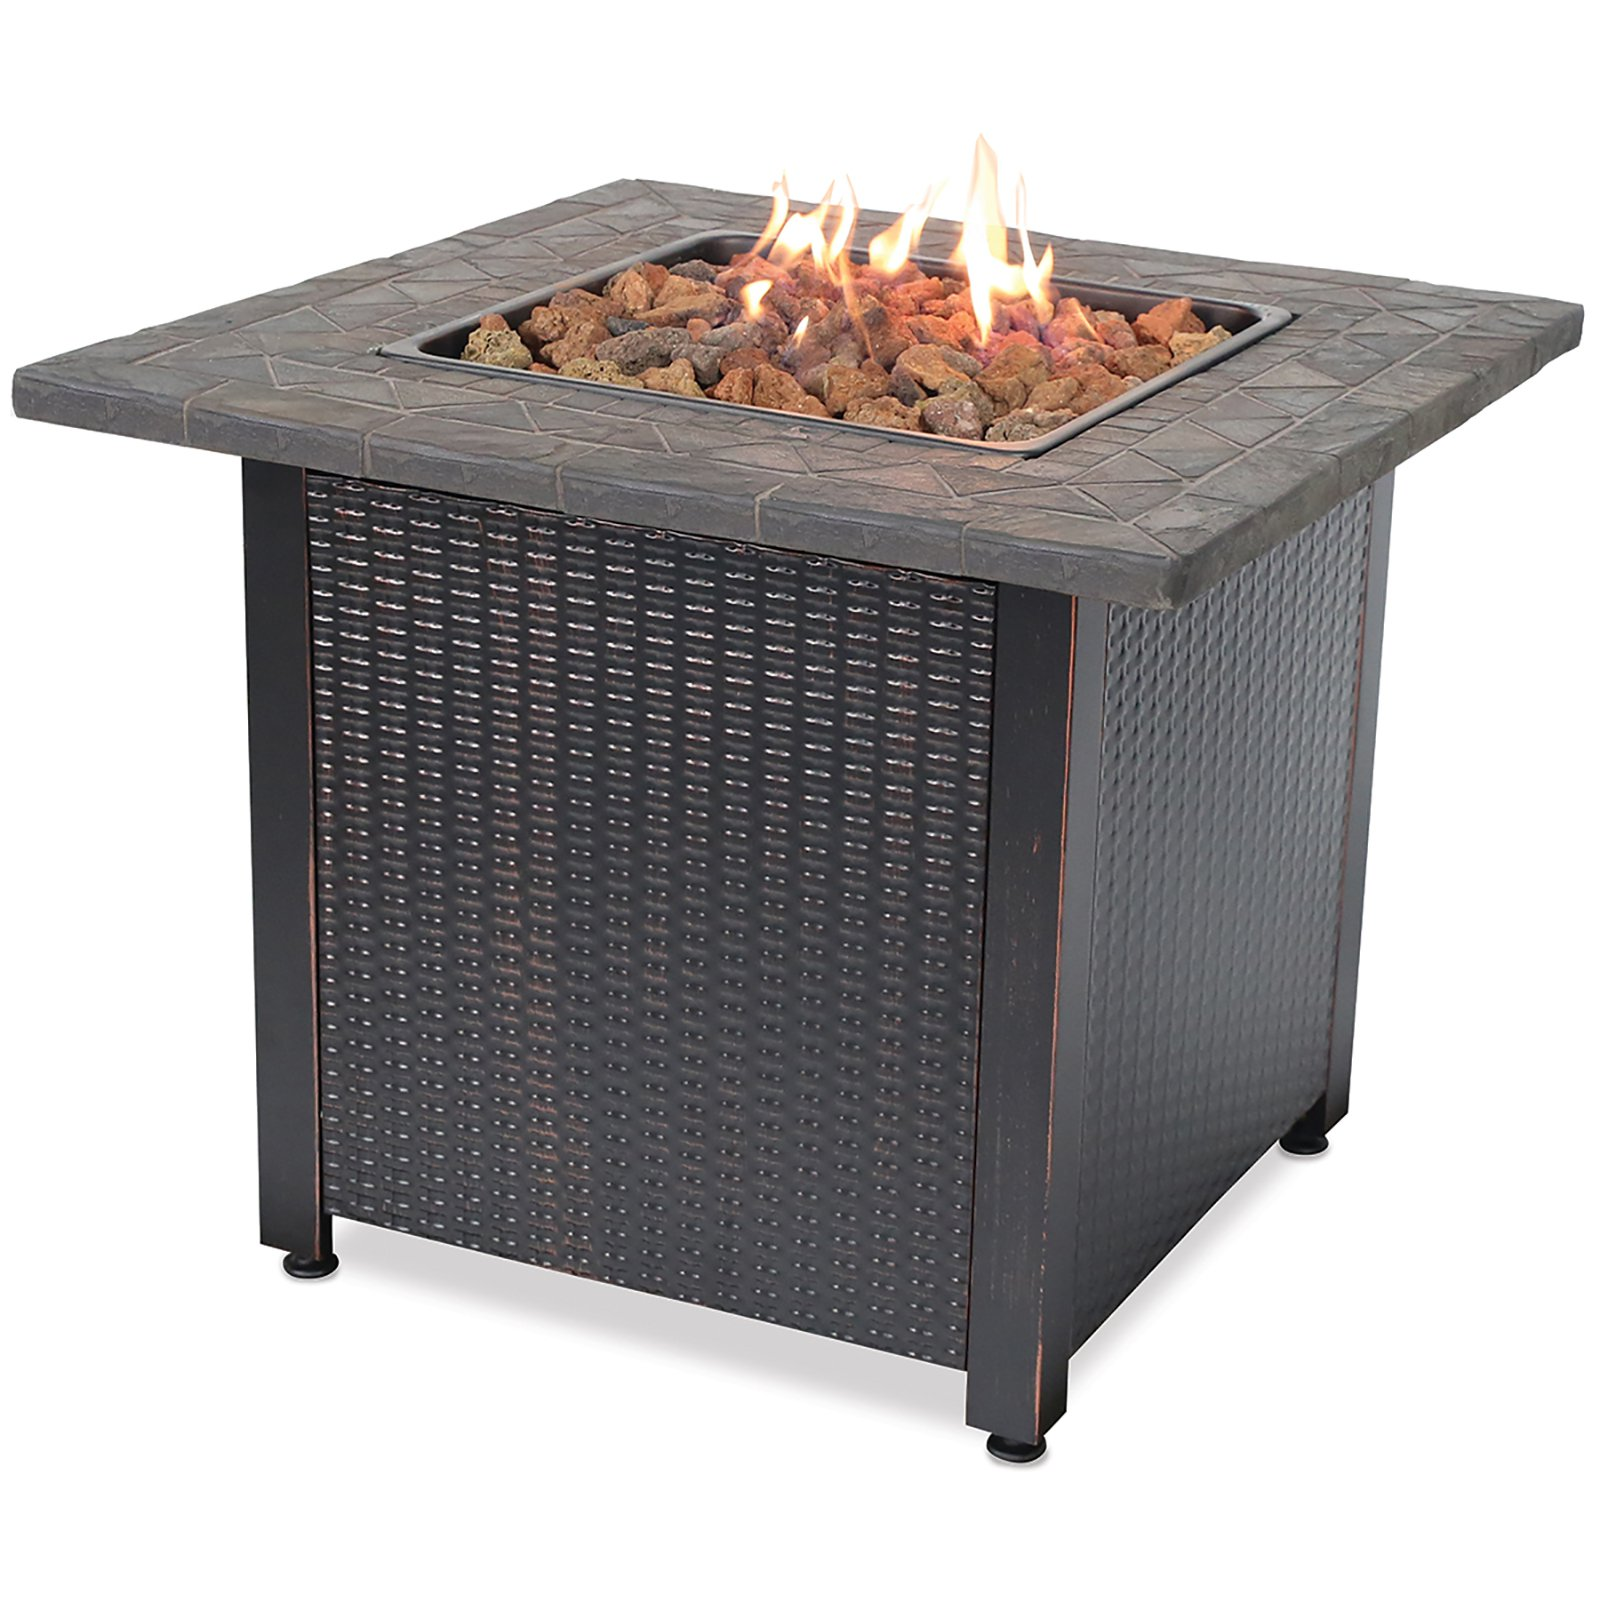 Blue Rhino LP Gas Outdoor Fireplace by Blue Rhino